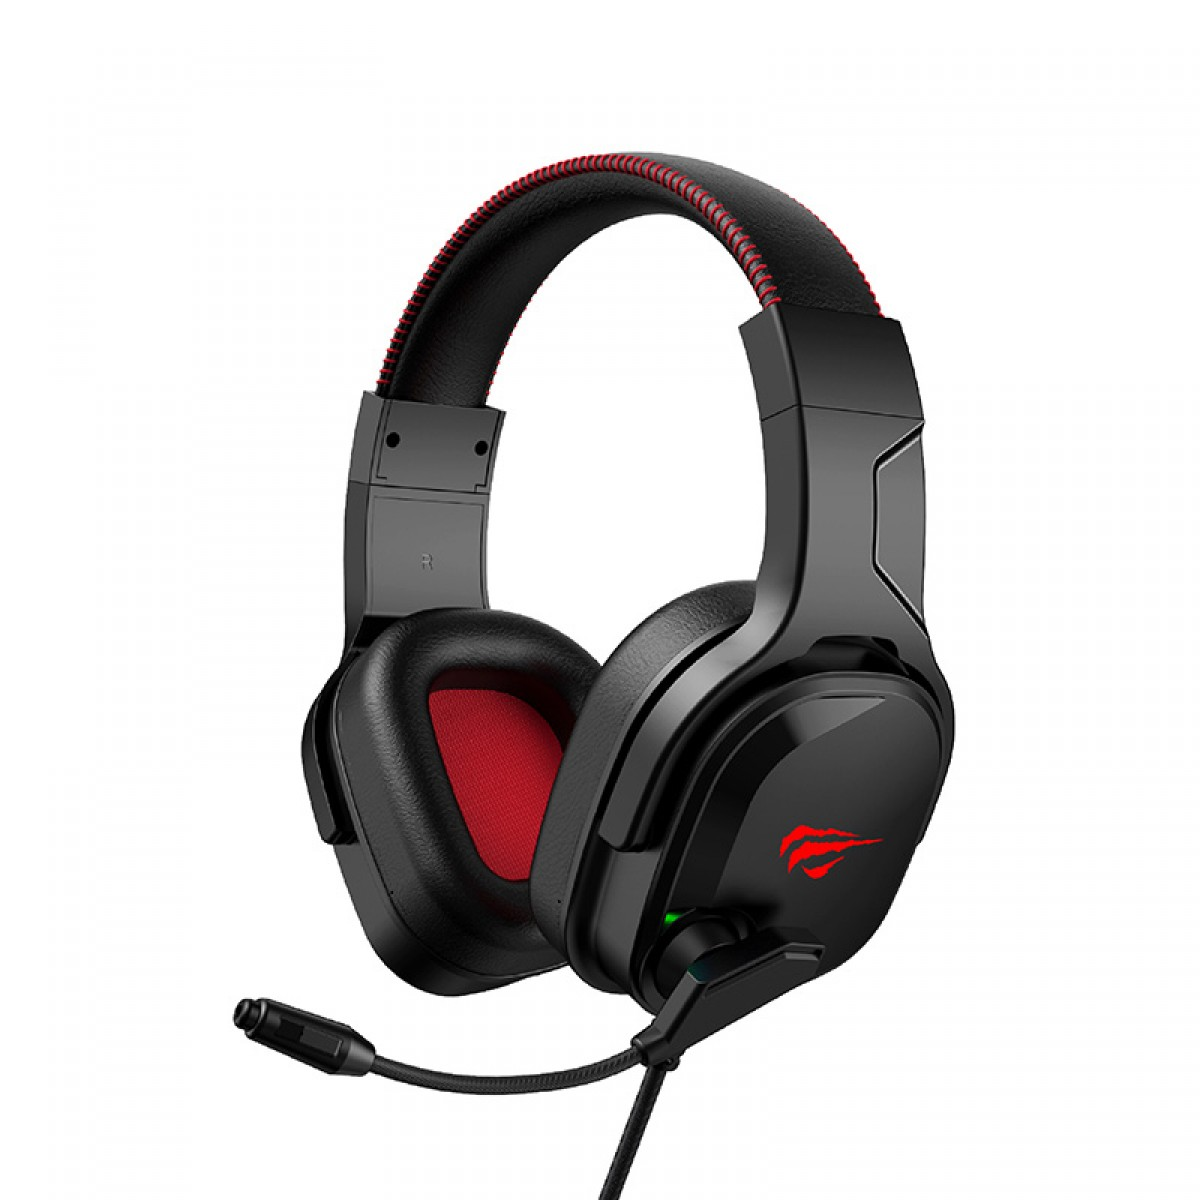 Headset Gamer Havit, RGB, 7.1 Surround, Black, H2022U